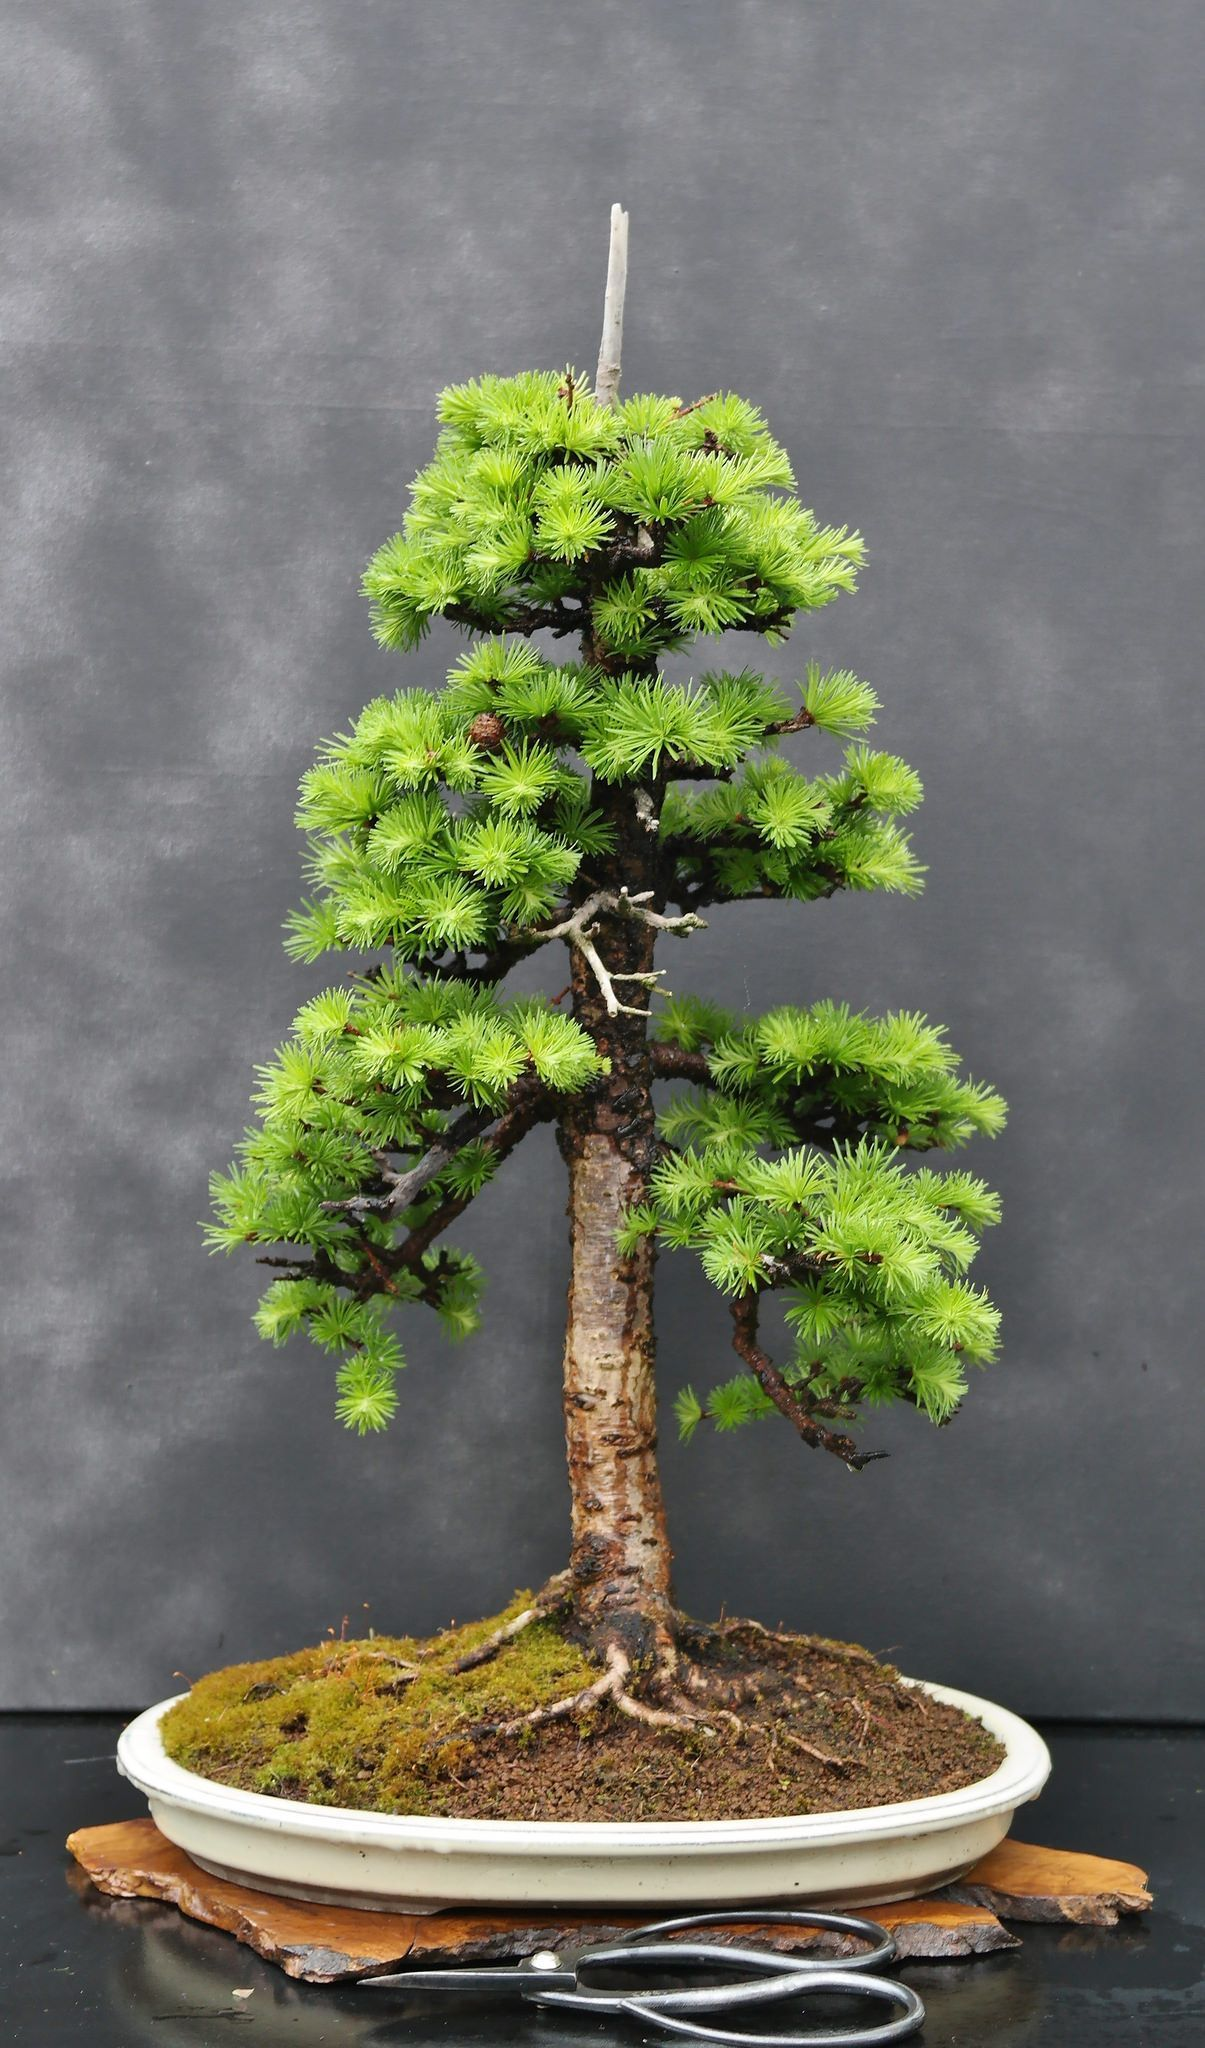 Bonsai Aarde Are Bonsai Trees Easy To Take Care Of Bonsai Bonsai Indoor